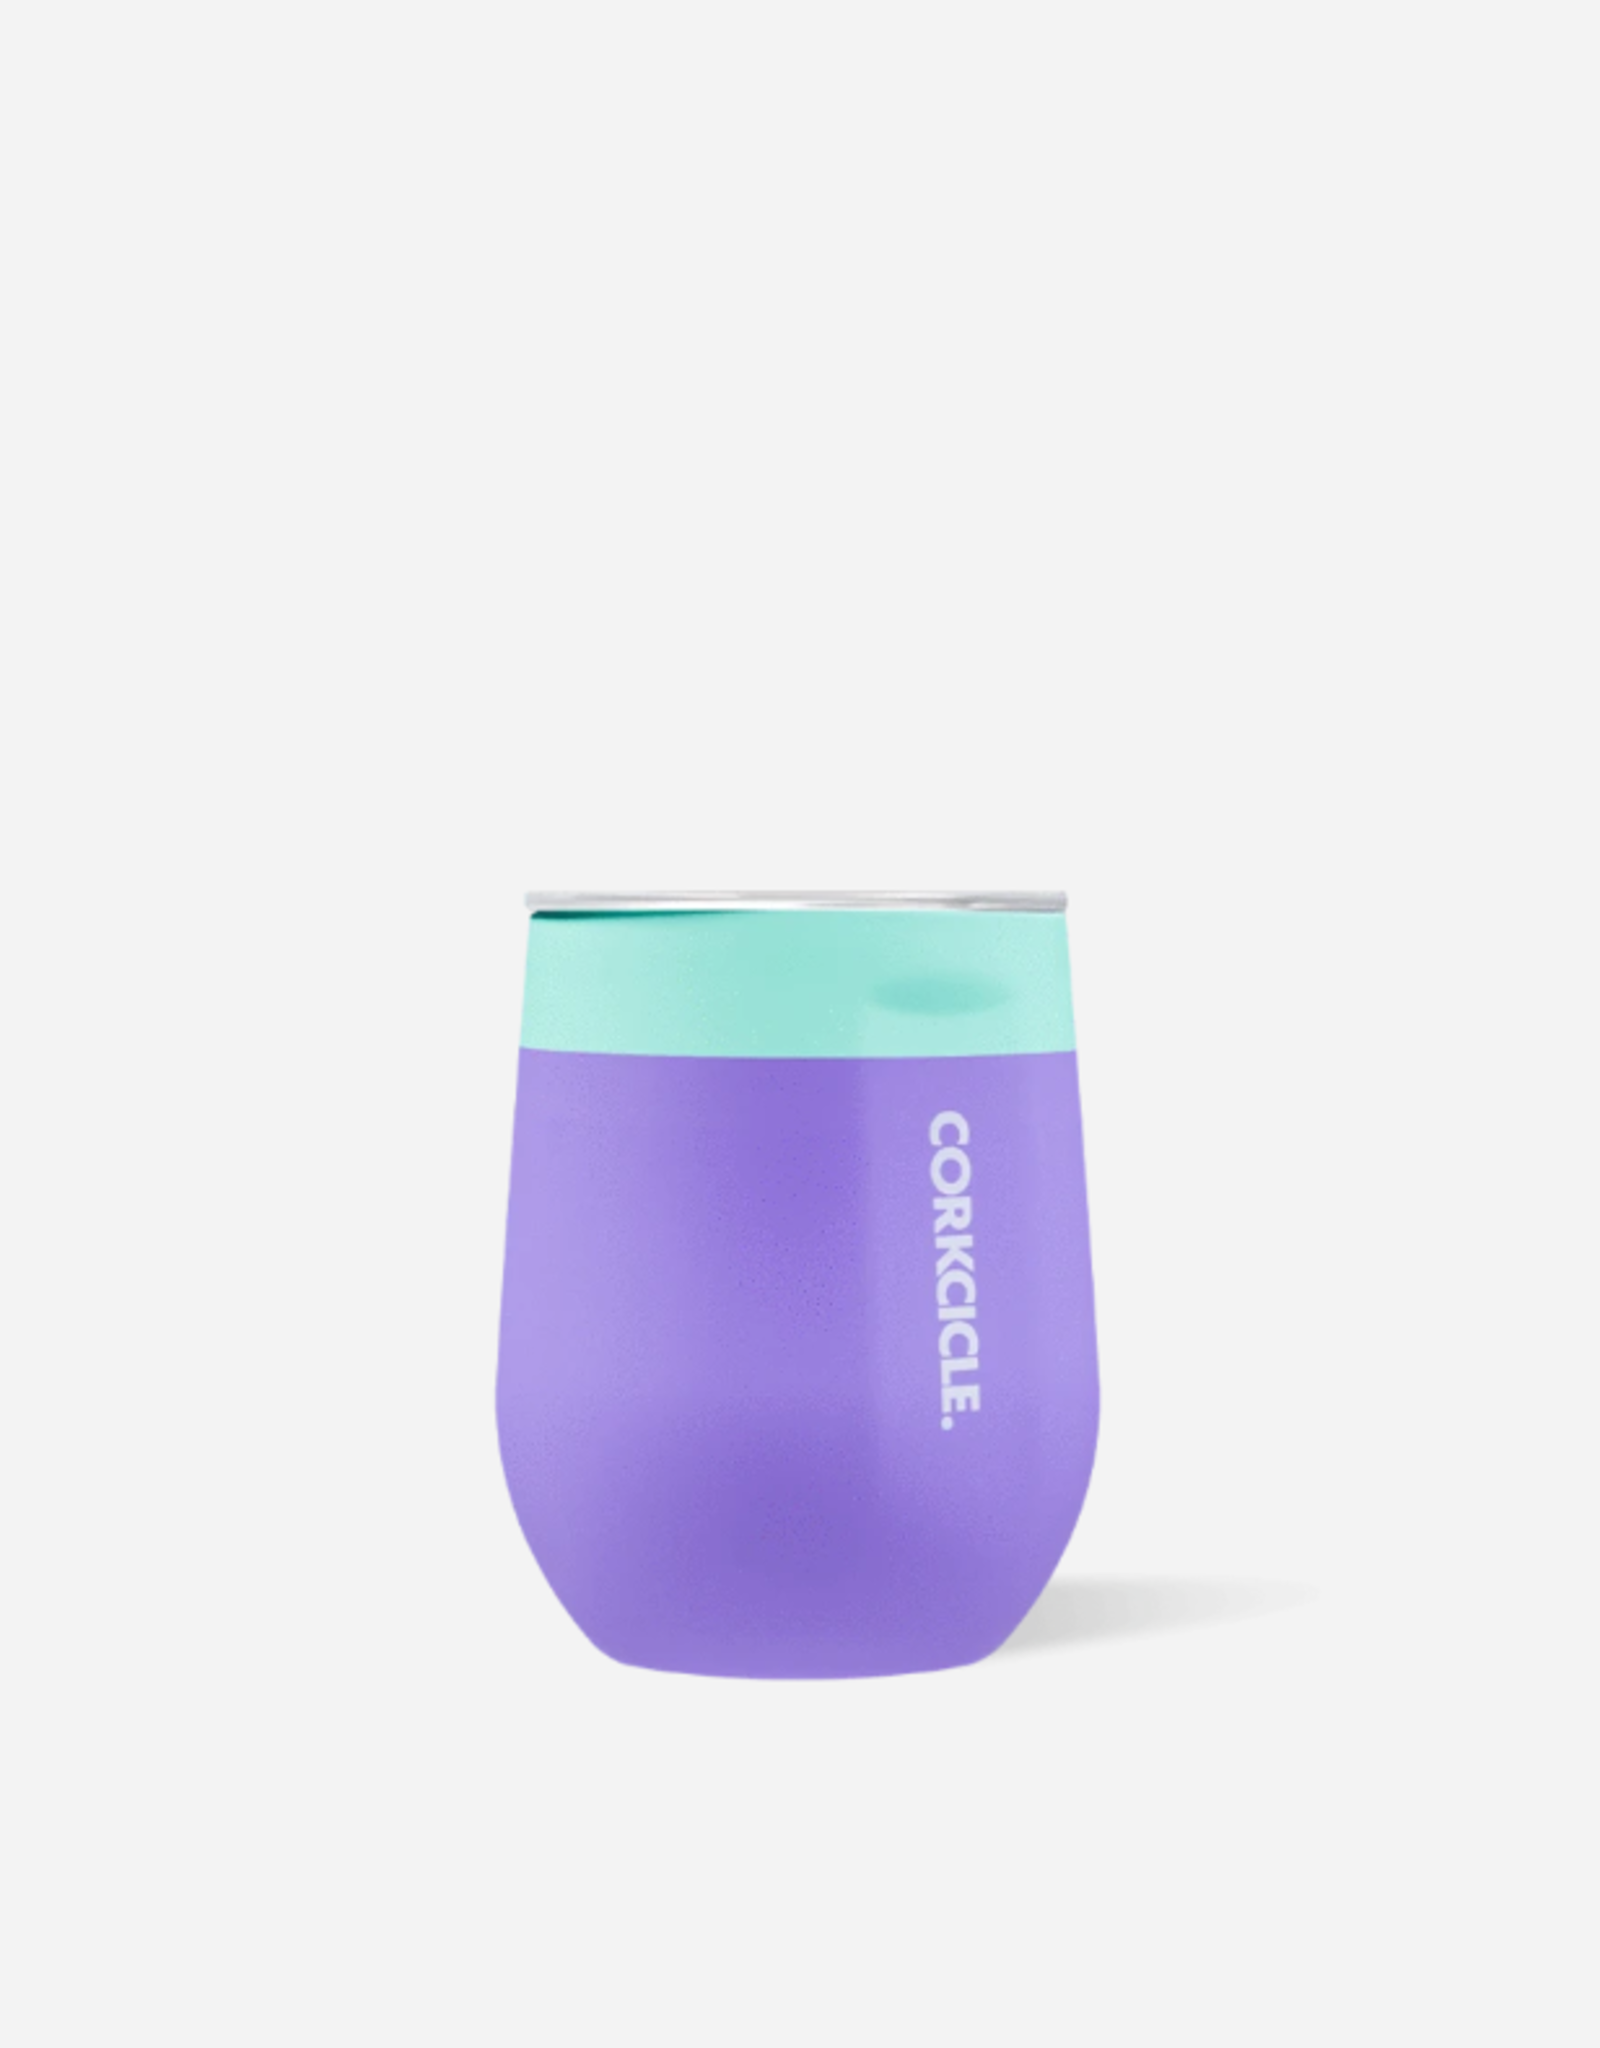 Corkcicle Corkcicle Stemless 12oz, Mint Berry